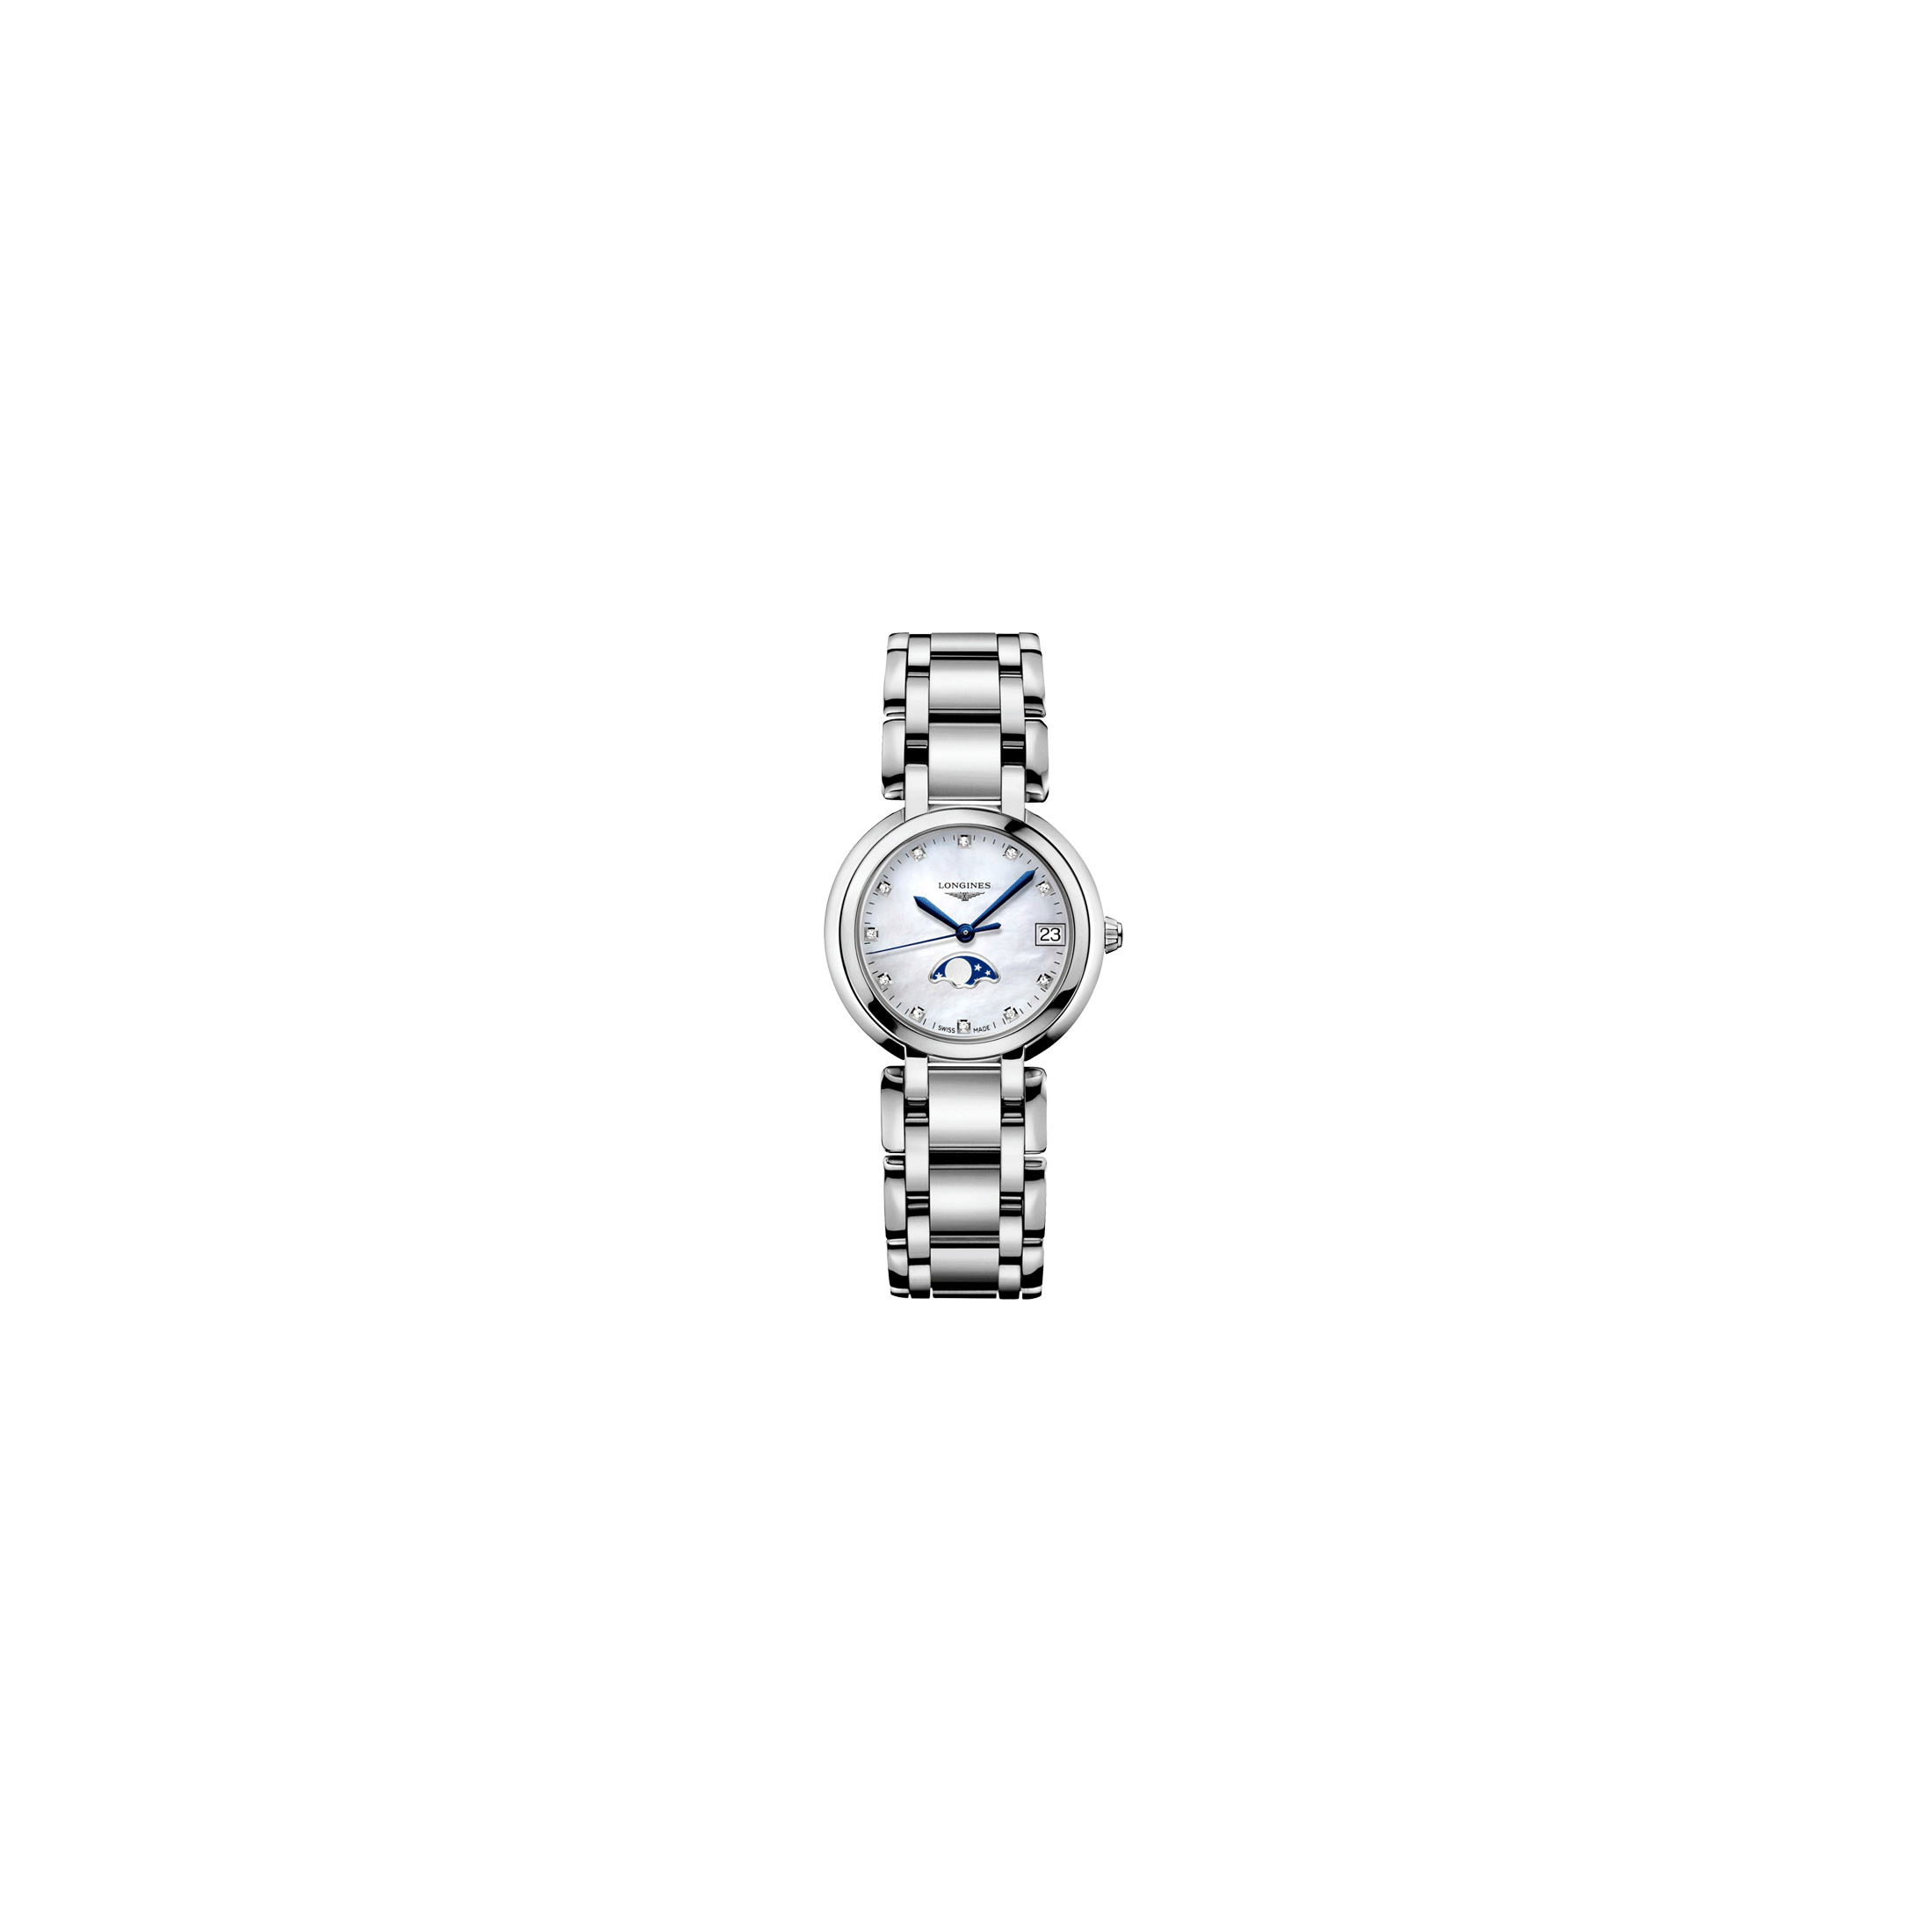 Montre Longines Primaluna quartz cadran nacre index diamants bracelet acier 30,5 mm - SOLDAT PL